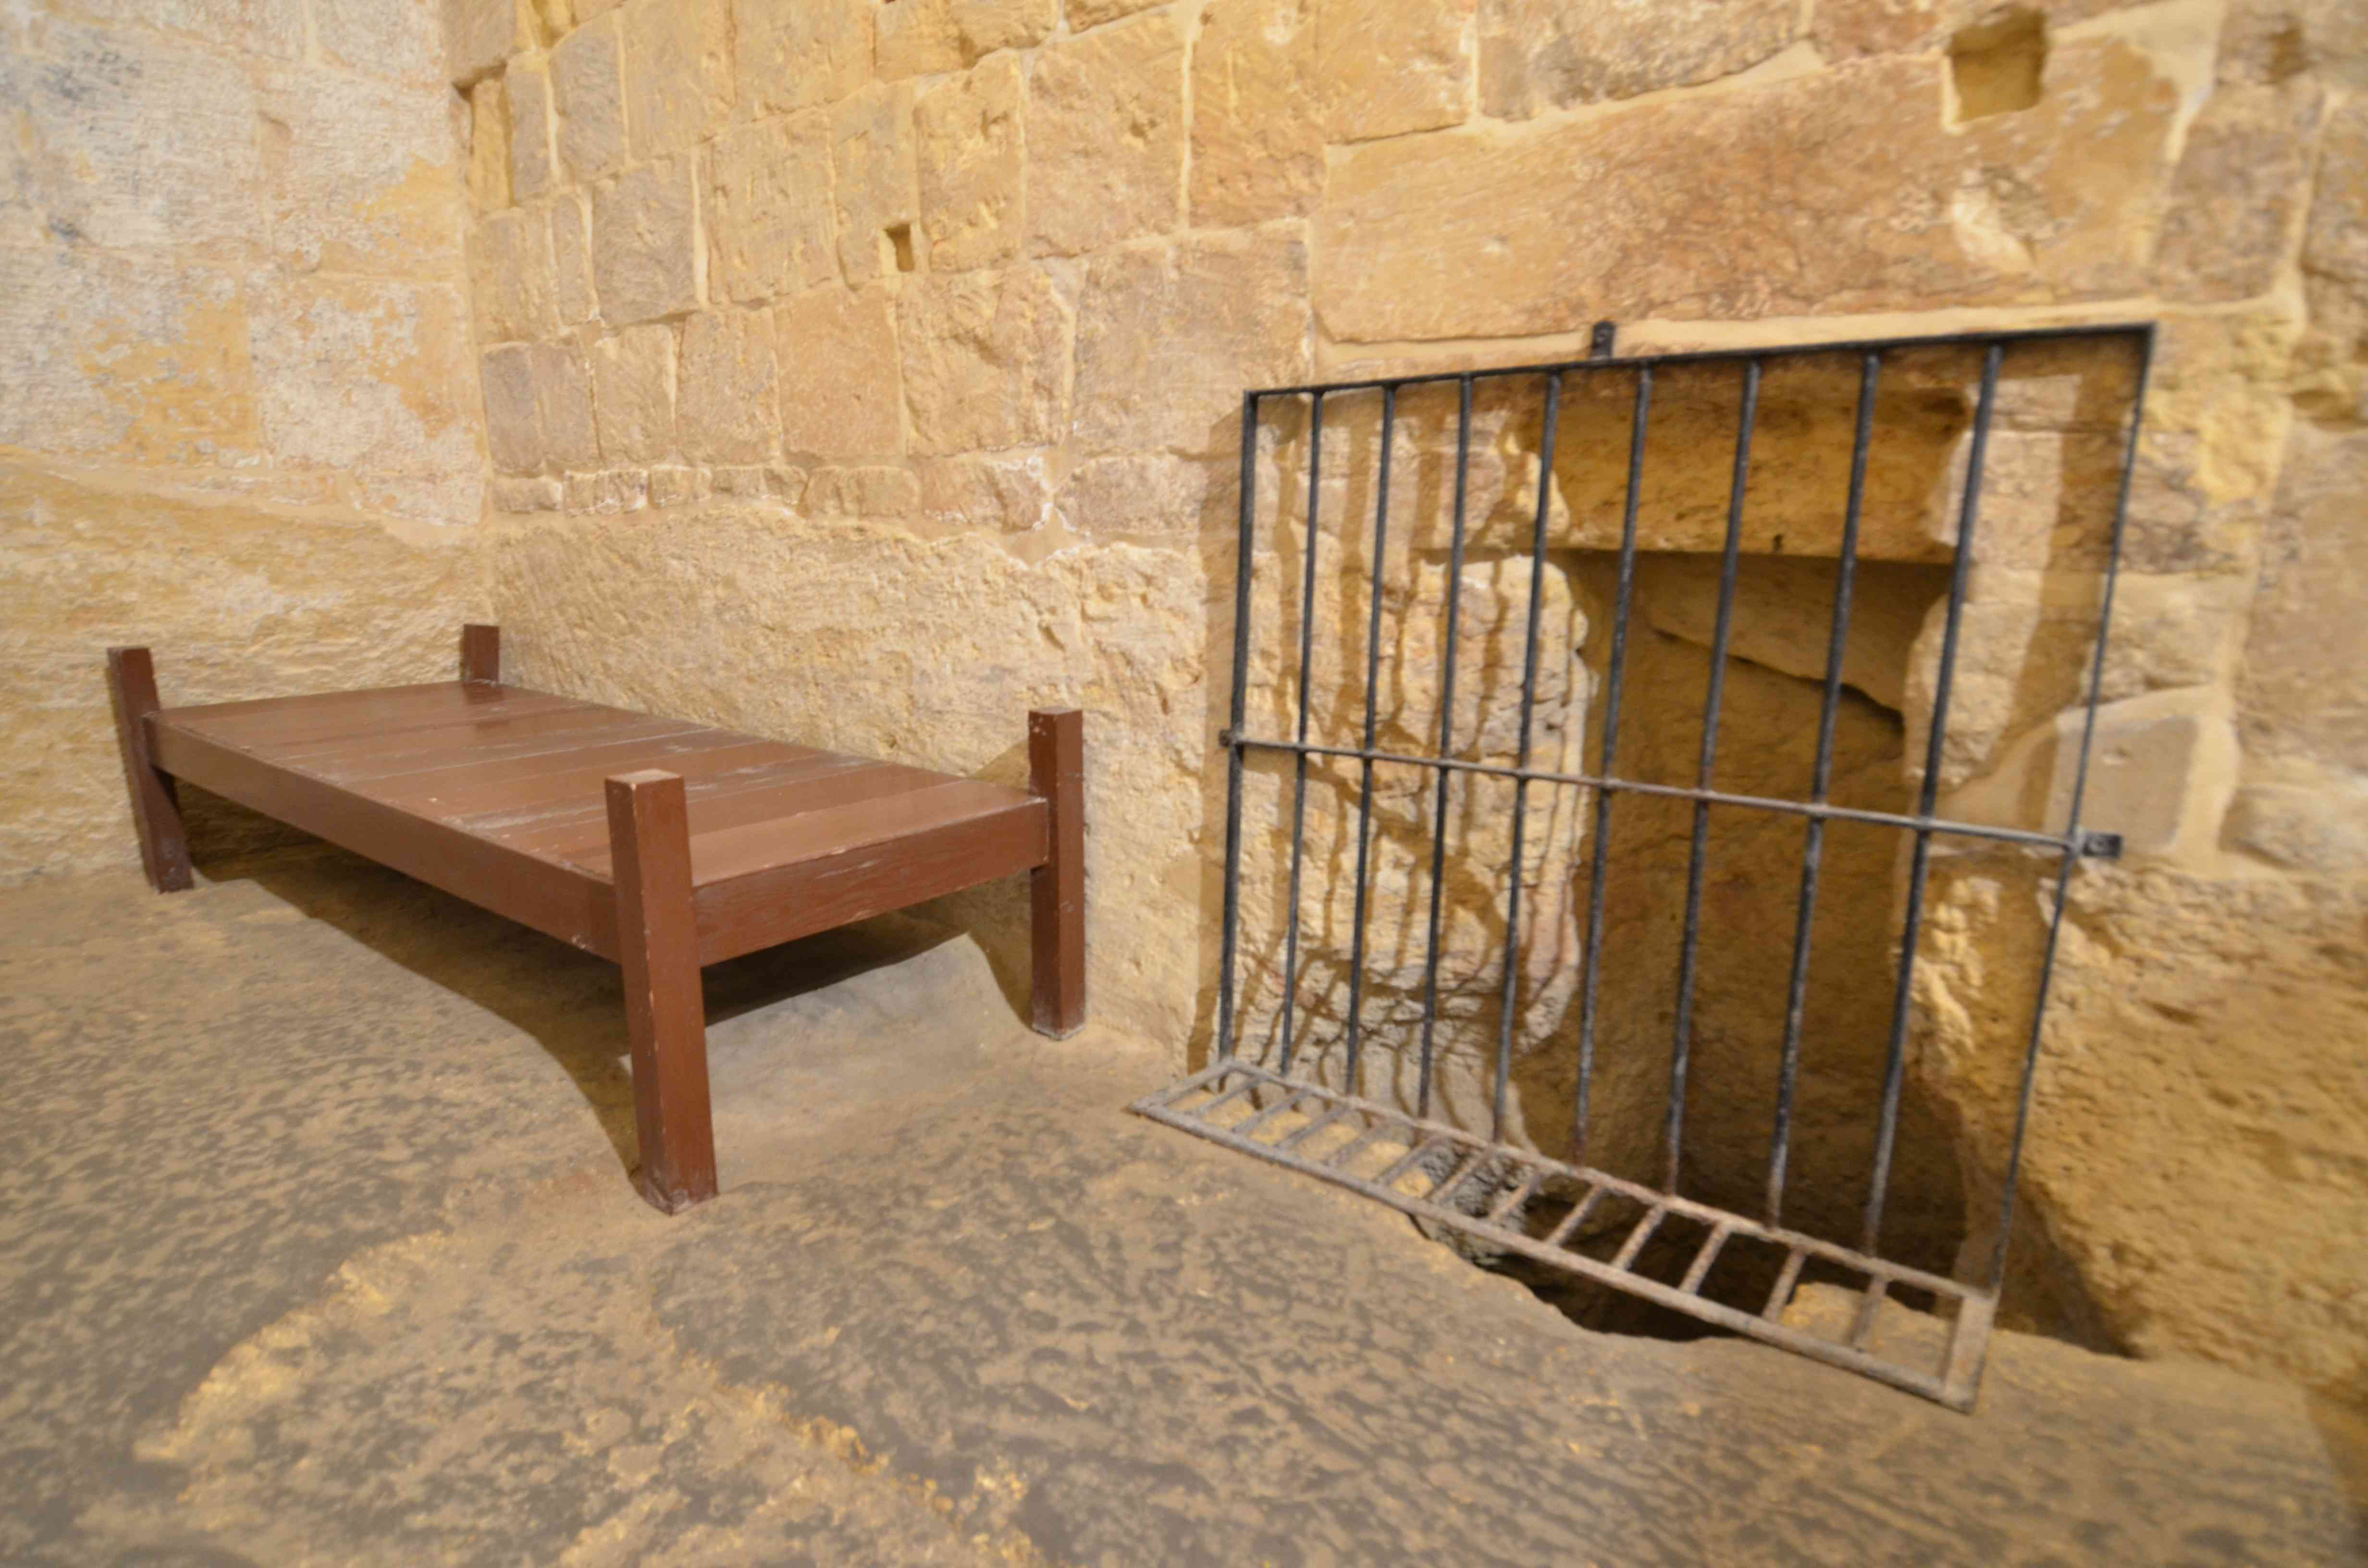 Prison cell in the Inquisitor's Palace, Malta